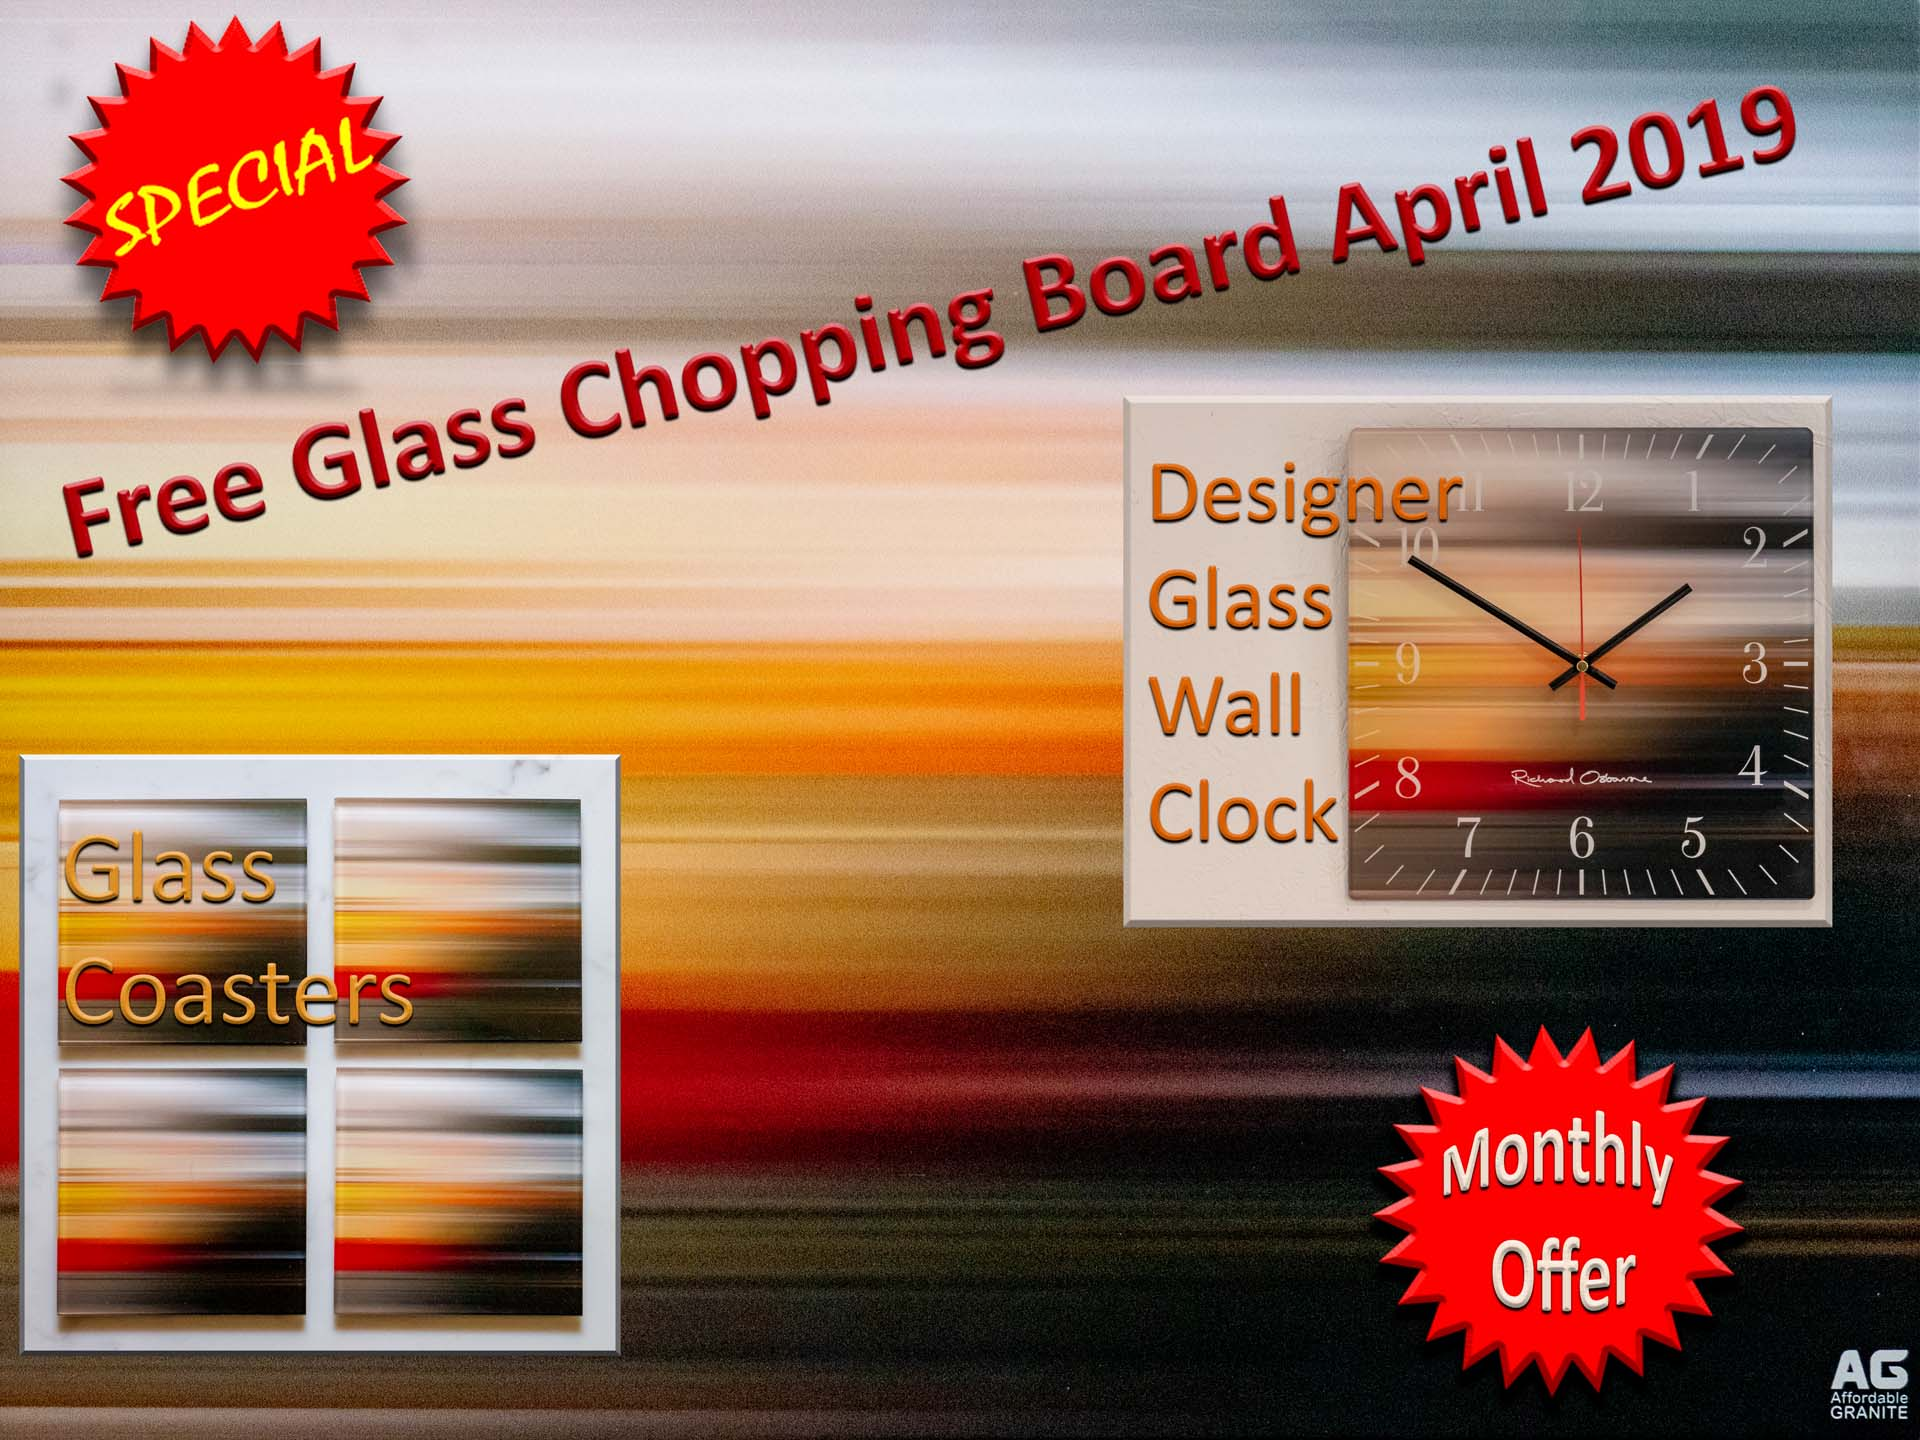 glass chopping board clock coasters offer southern counties quartz granite worktops surrey popup